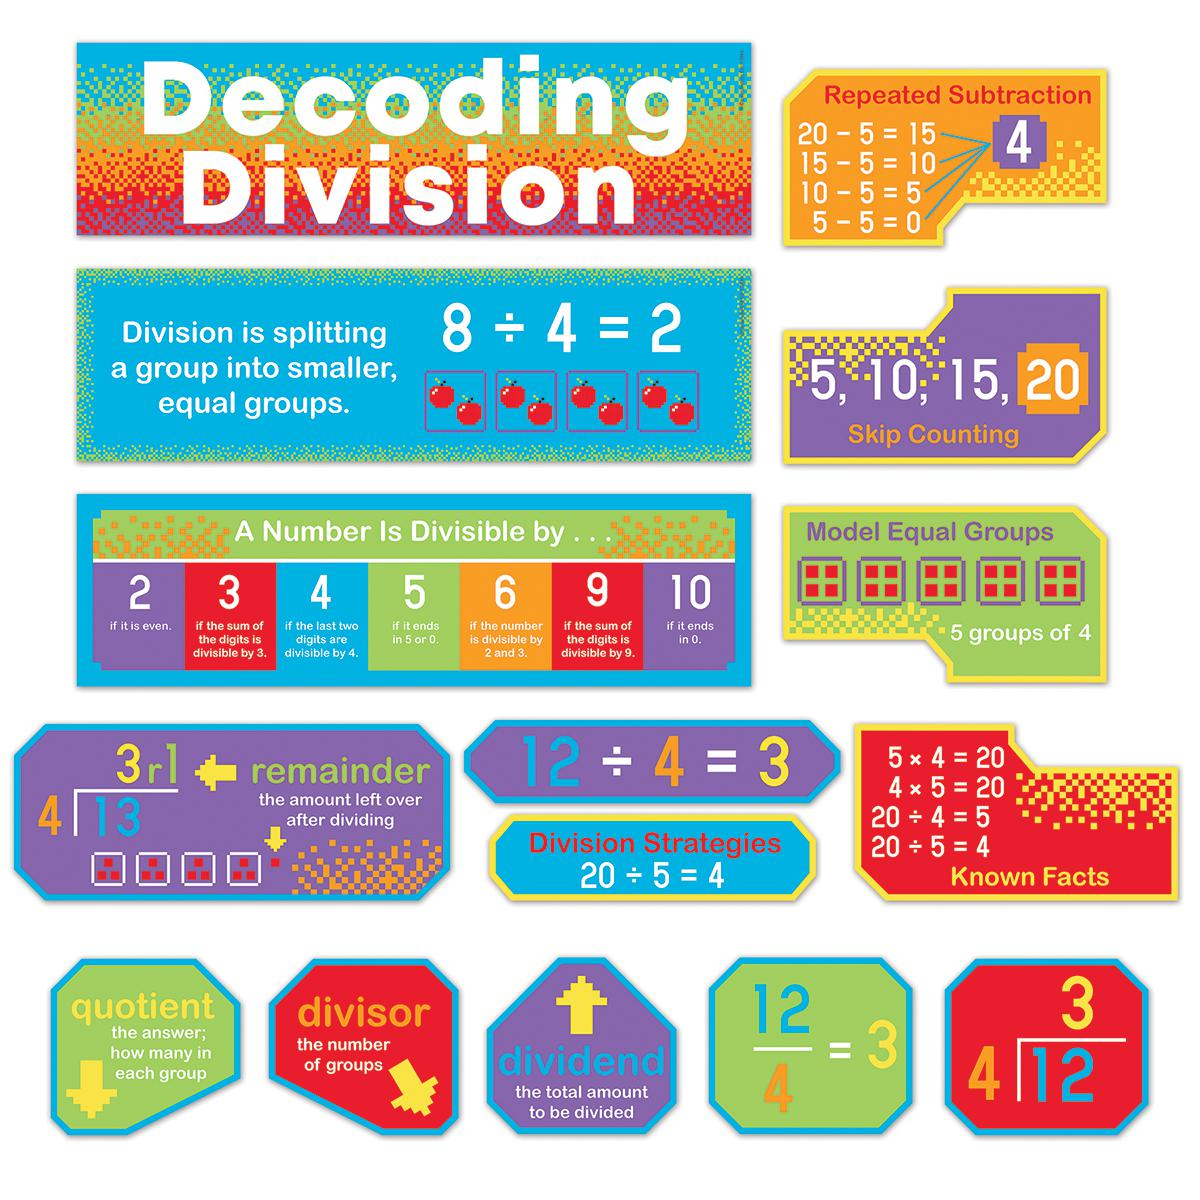 Decoding Division Mini Bulletin Board Set